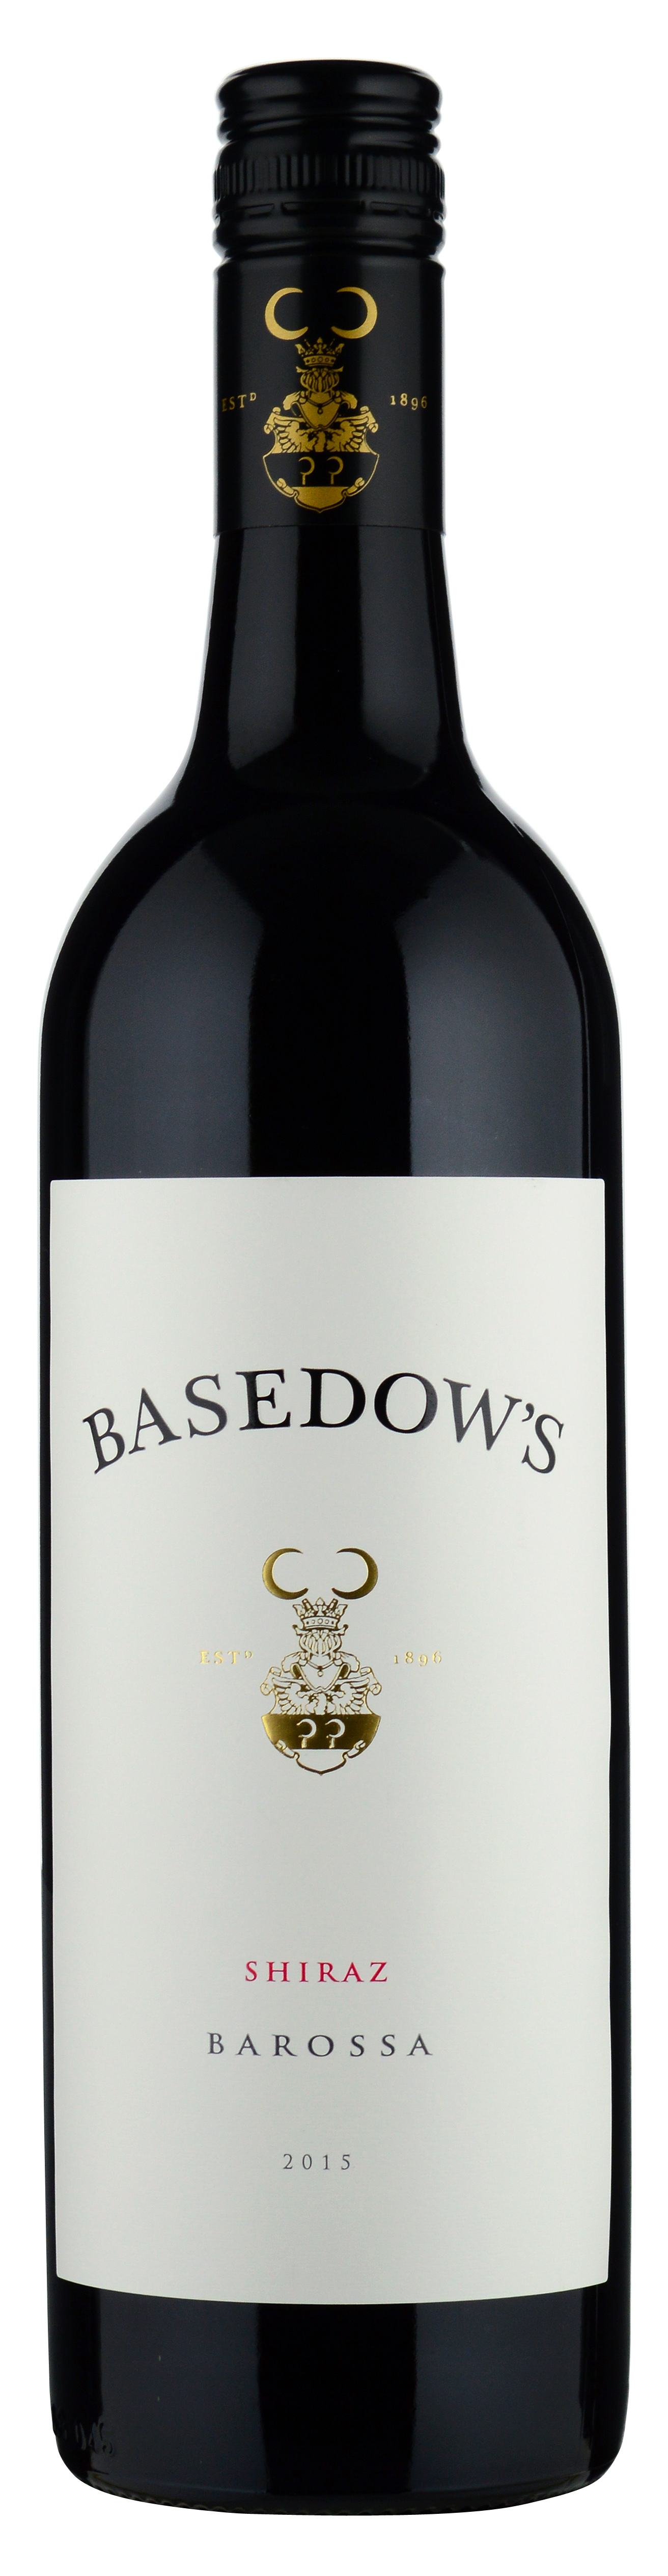 Basedow's Shiraz 2015 (12 x 750mL) Barossa Valley SA